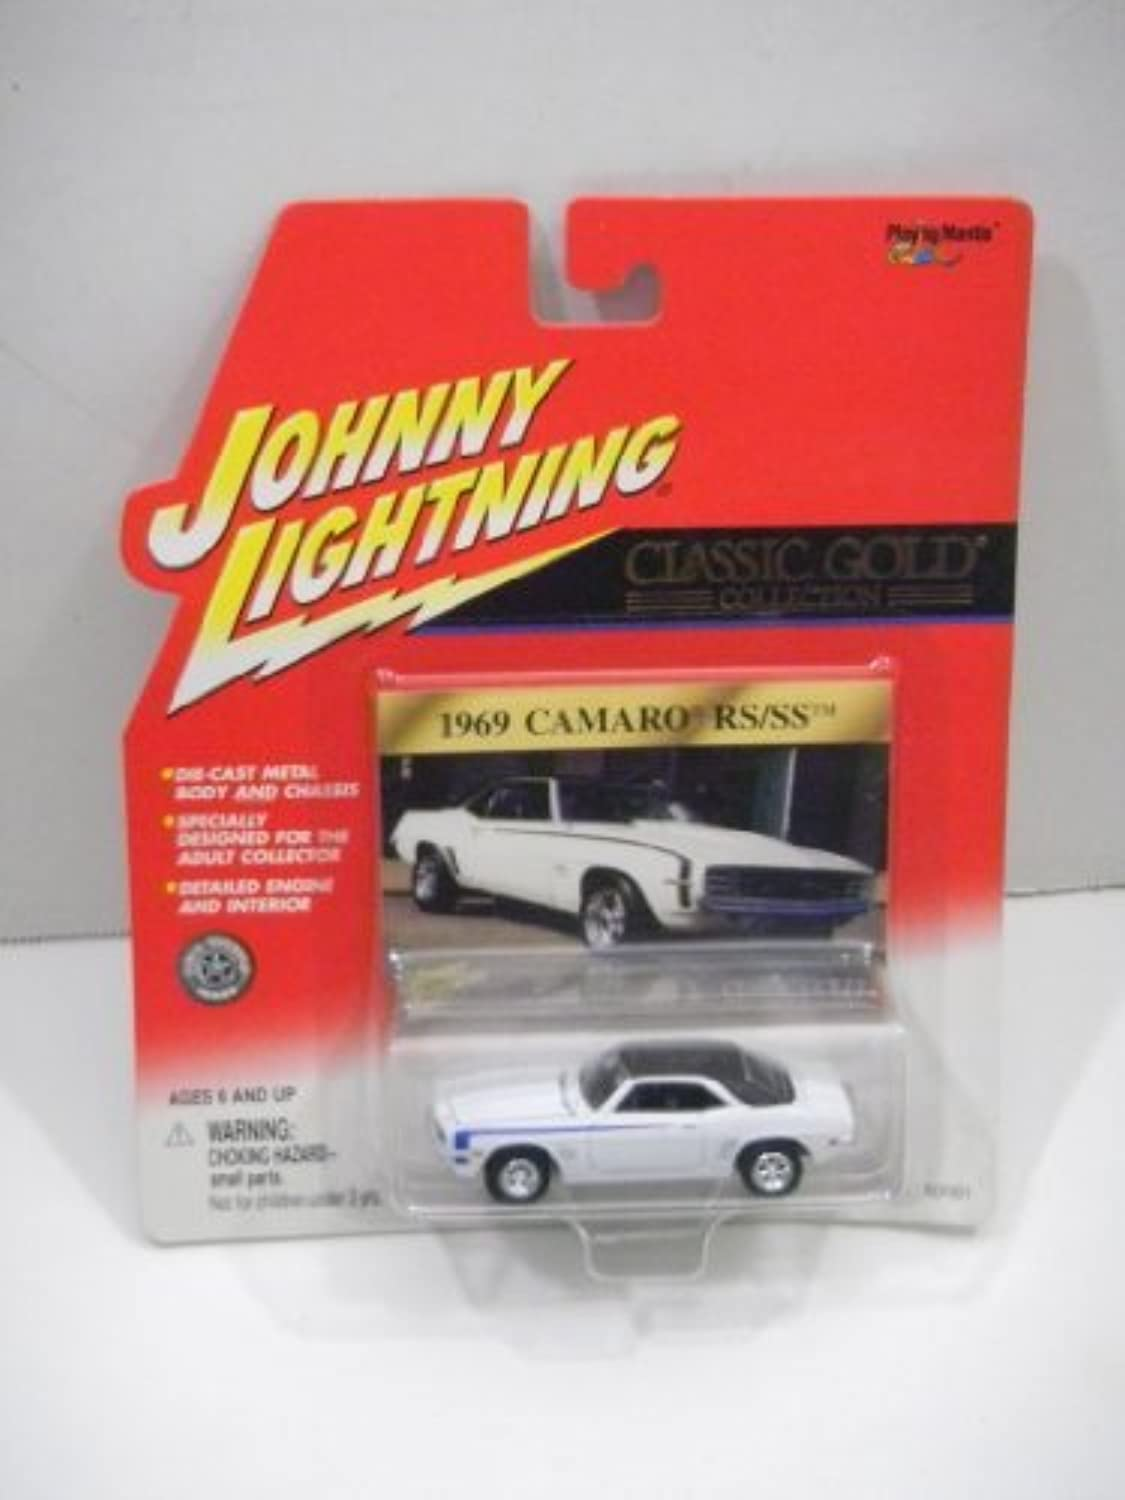 Johnny Lightning Classic Gold Collection 1969 Chevy Camaro RS SS Weiß by Johnny Lightning